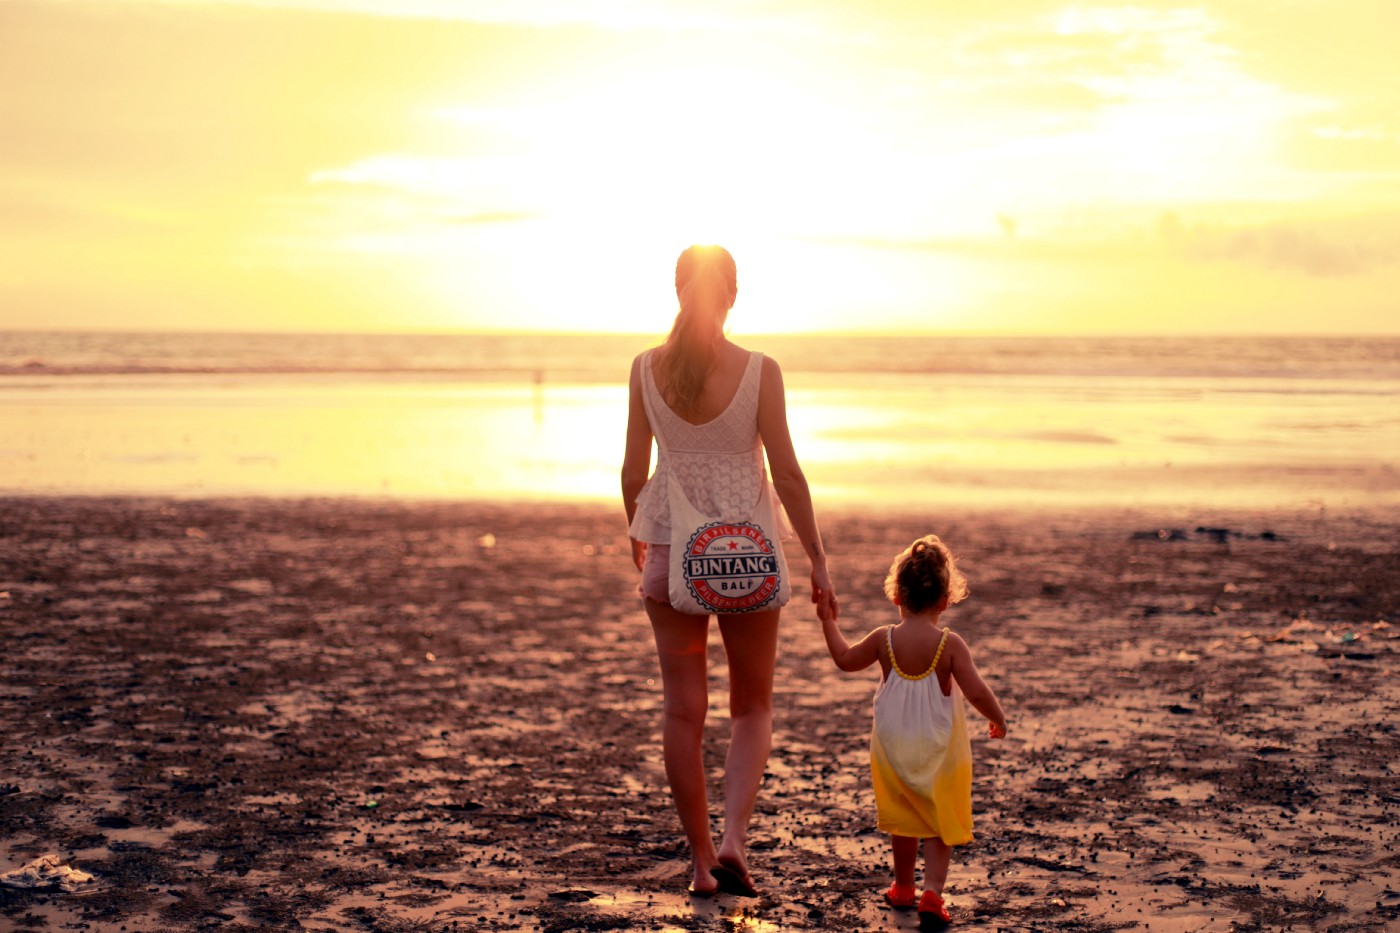 A single mother walks on the beach towards a sunset.